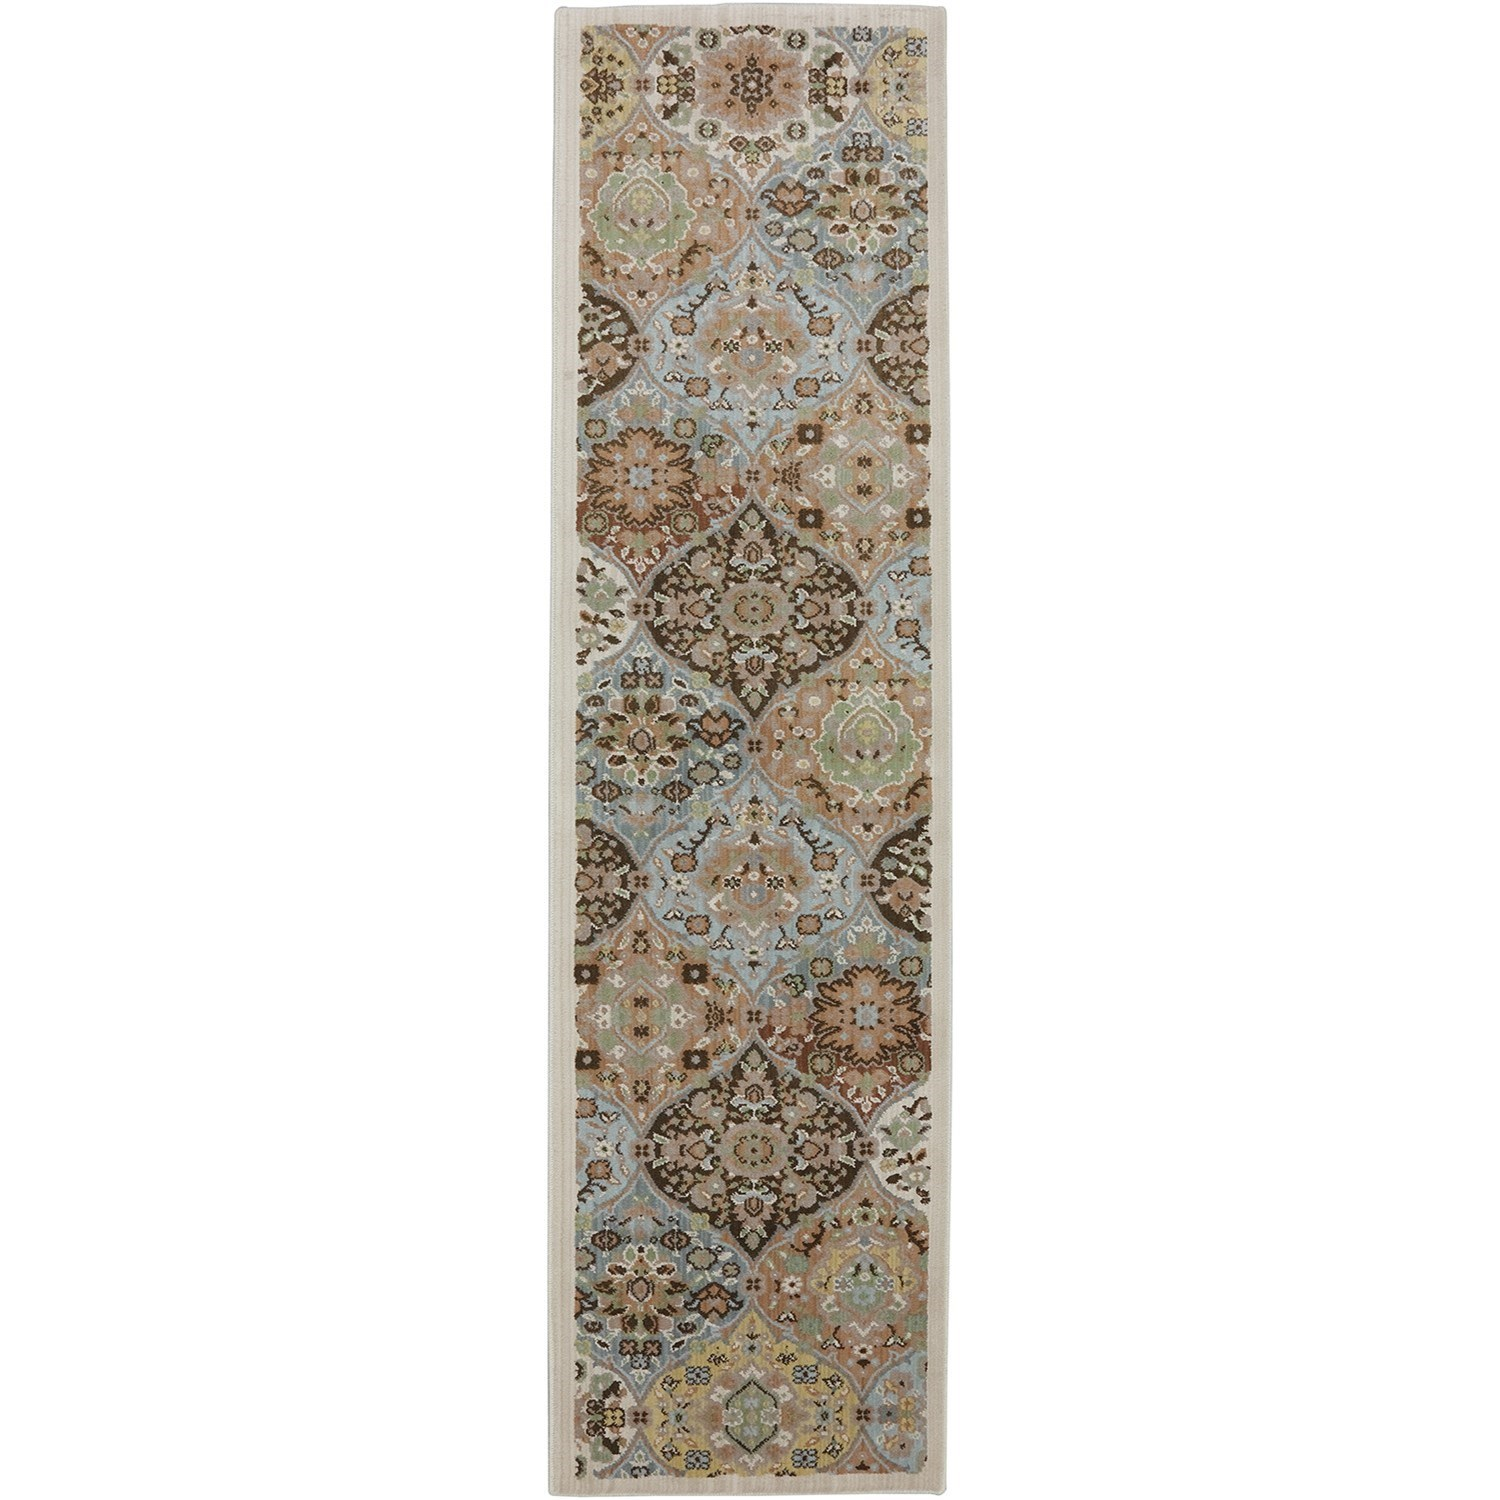 "Serenity 2' 1""x7' 10"" Kirman Coast Peat Moss Area Rug by American Rug Craftsmen at Alison Craig Home Furnishings"